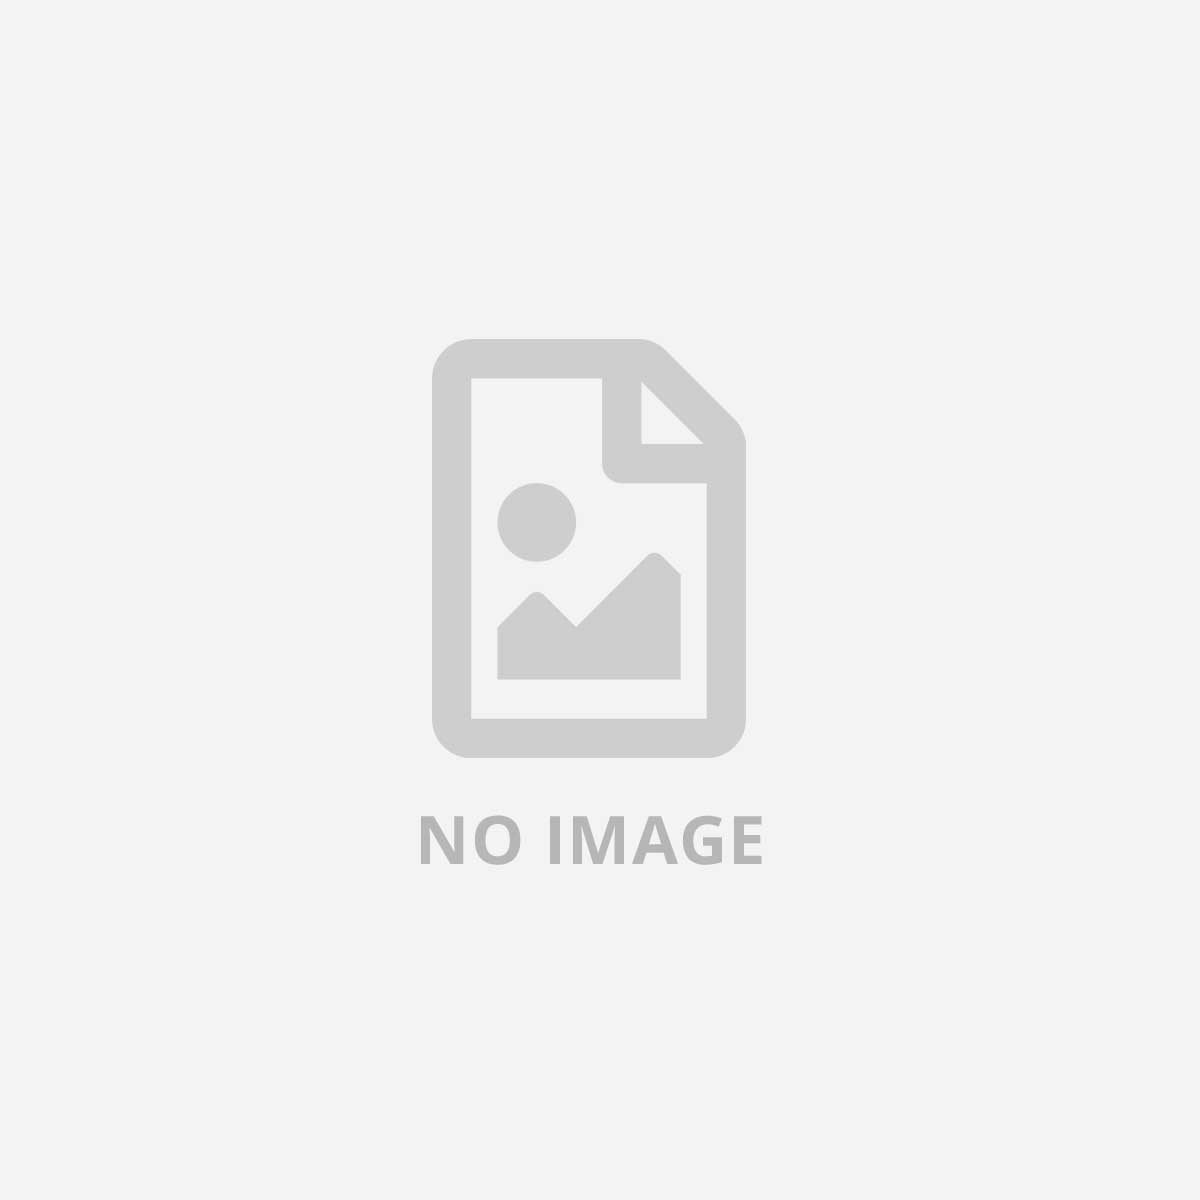 MAXELL 10PZ.DVD+R 4.7GB 16X SPINDLE